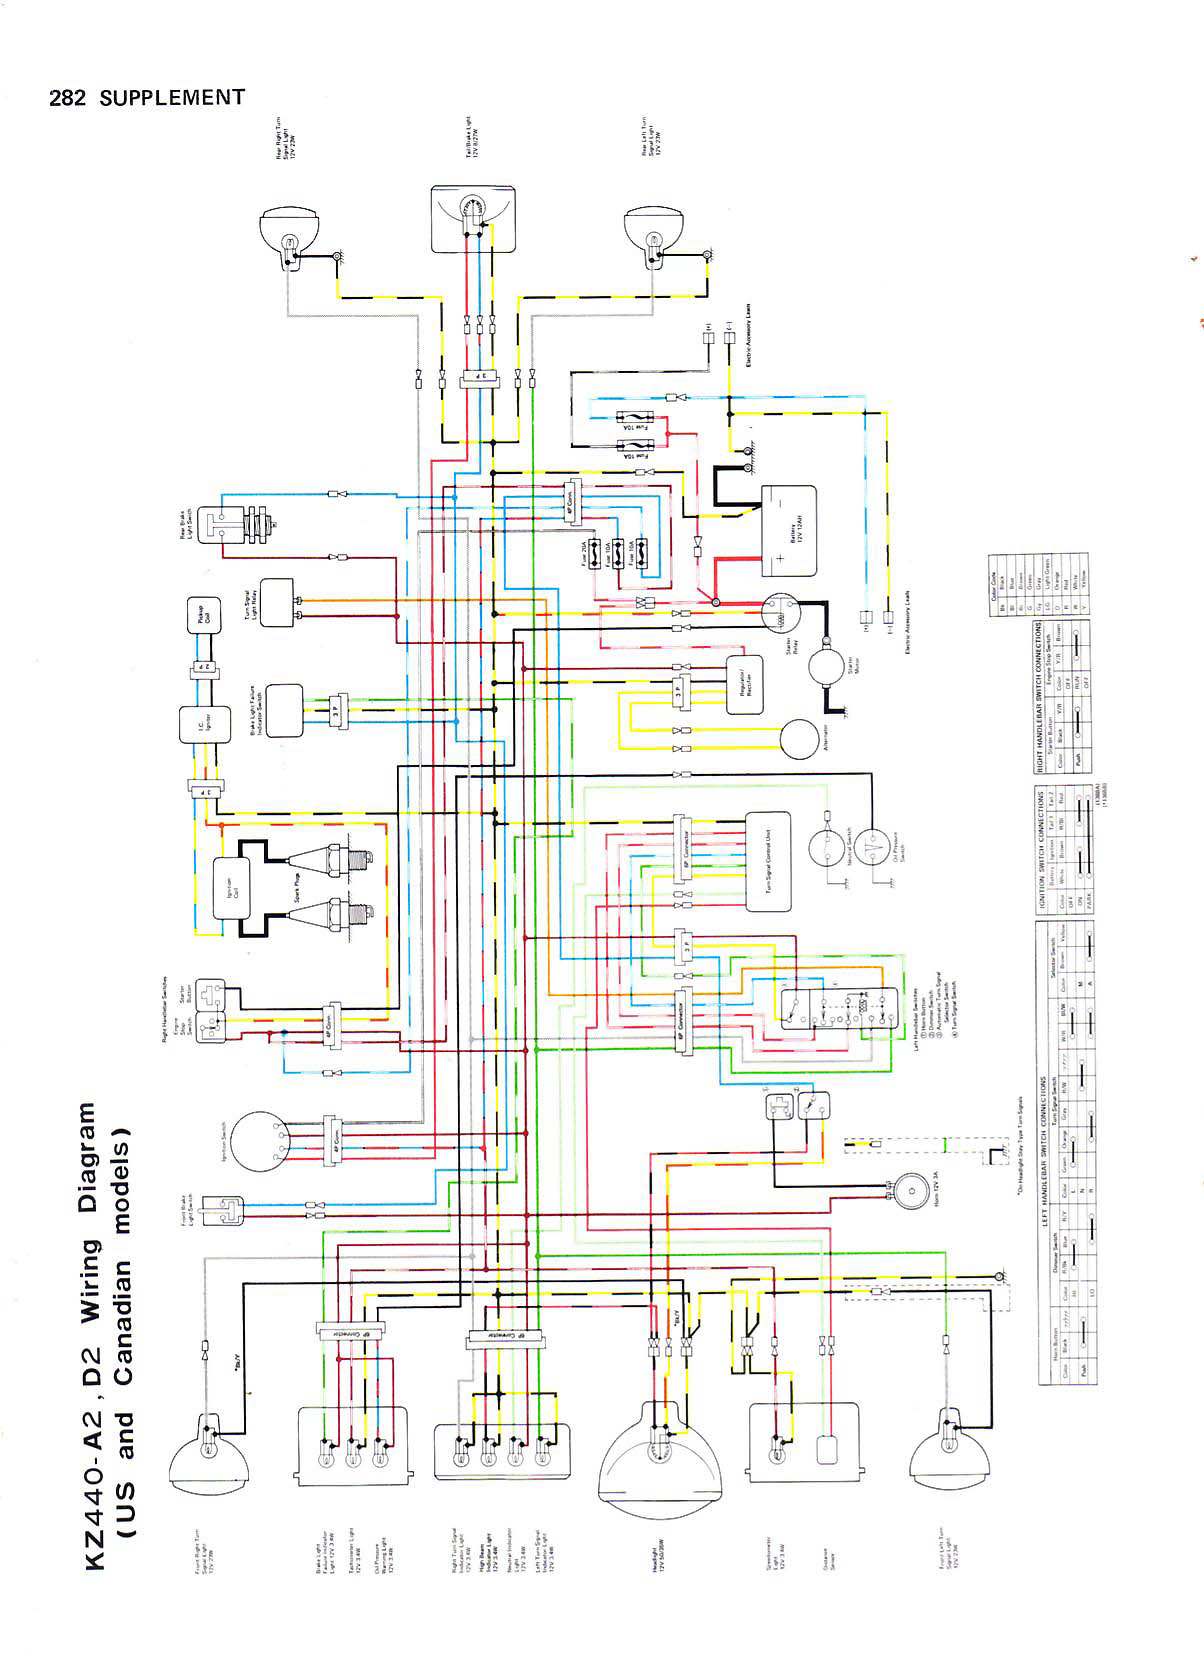 1980 Kz440 Wiring Diagram Product Diagrams Kawasaki Aura 1981 Ltd 440 Rebuild Thread Page 5 Barf Bay Area Rh Bayarearidersforum Com Kz750